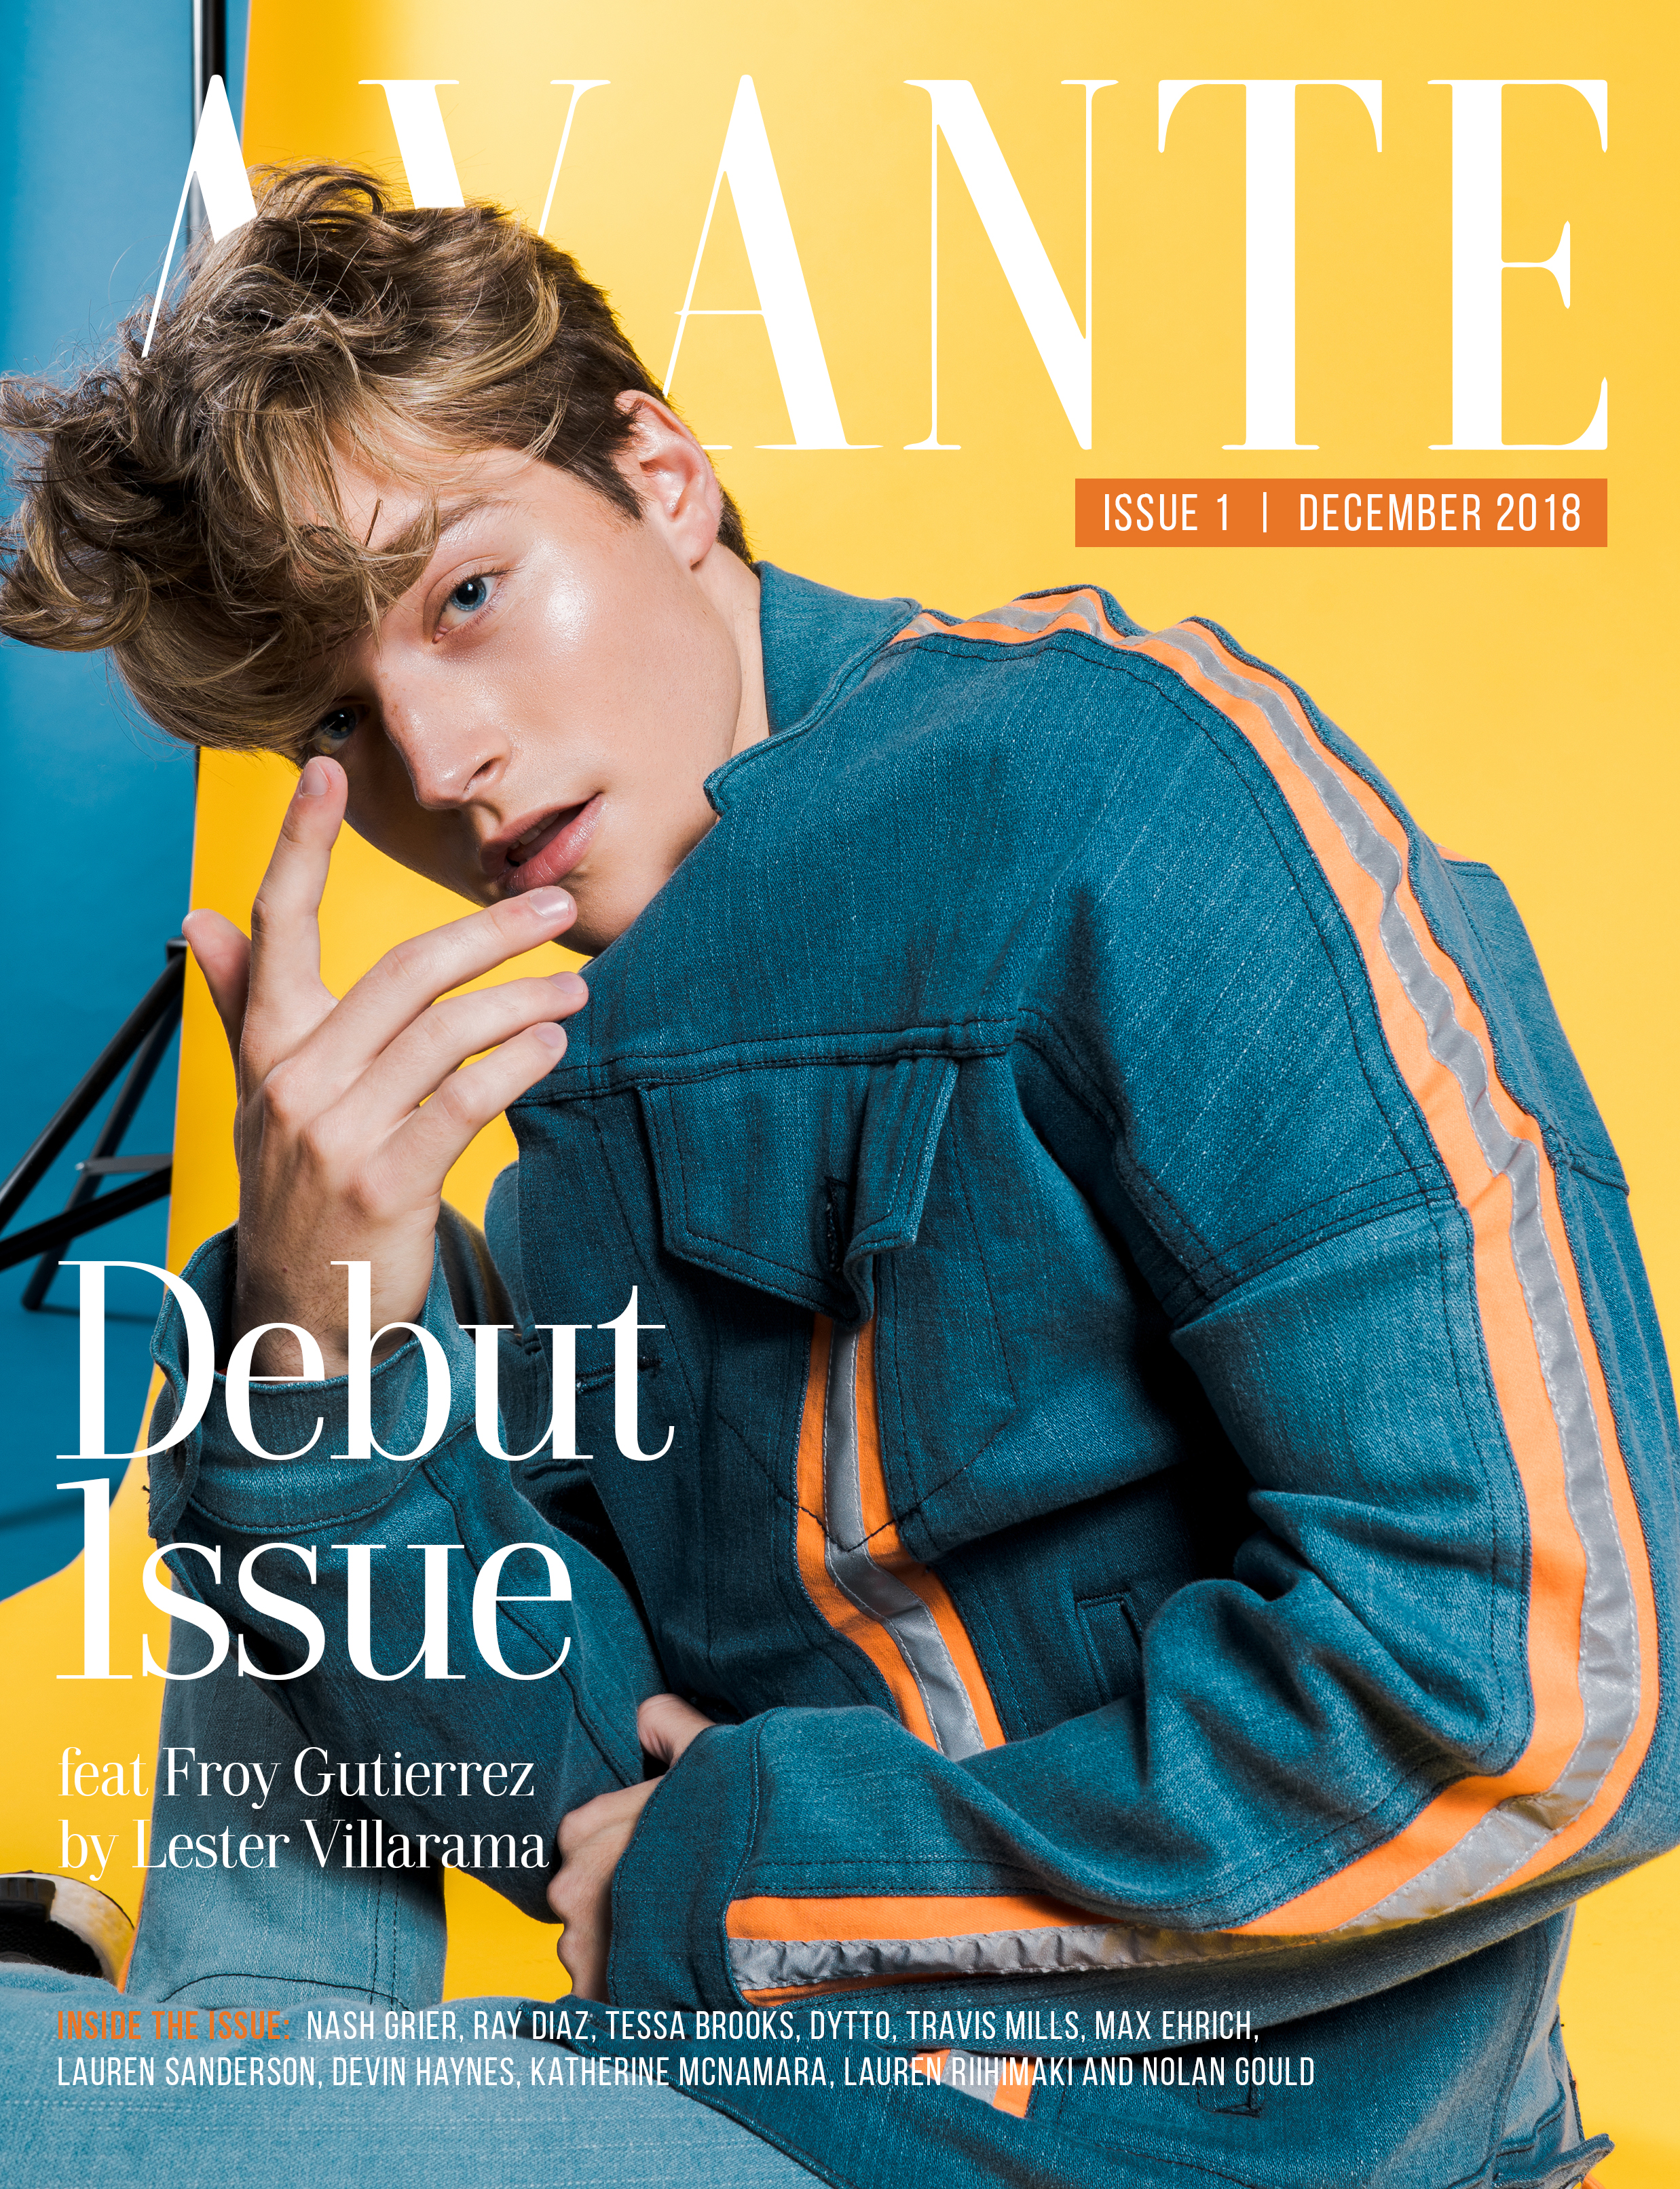 Debut Issue: Froy Gutierrez Cover